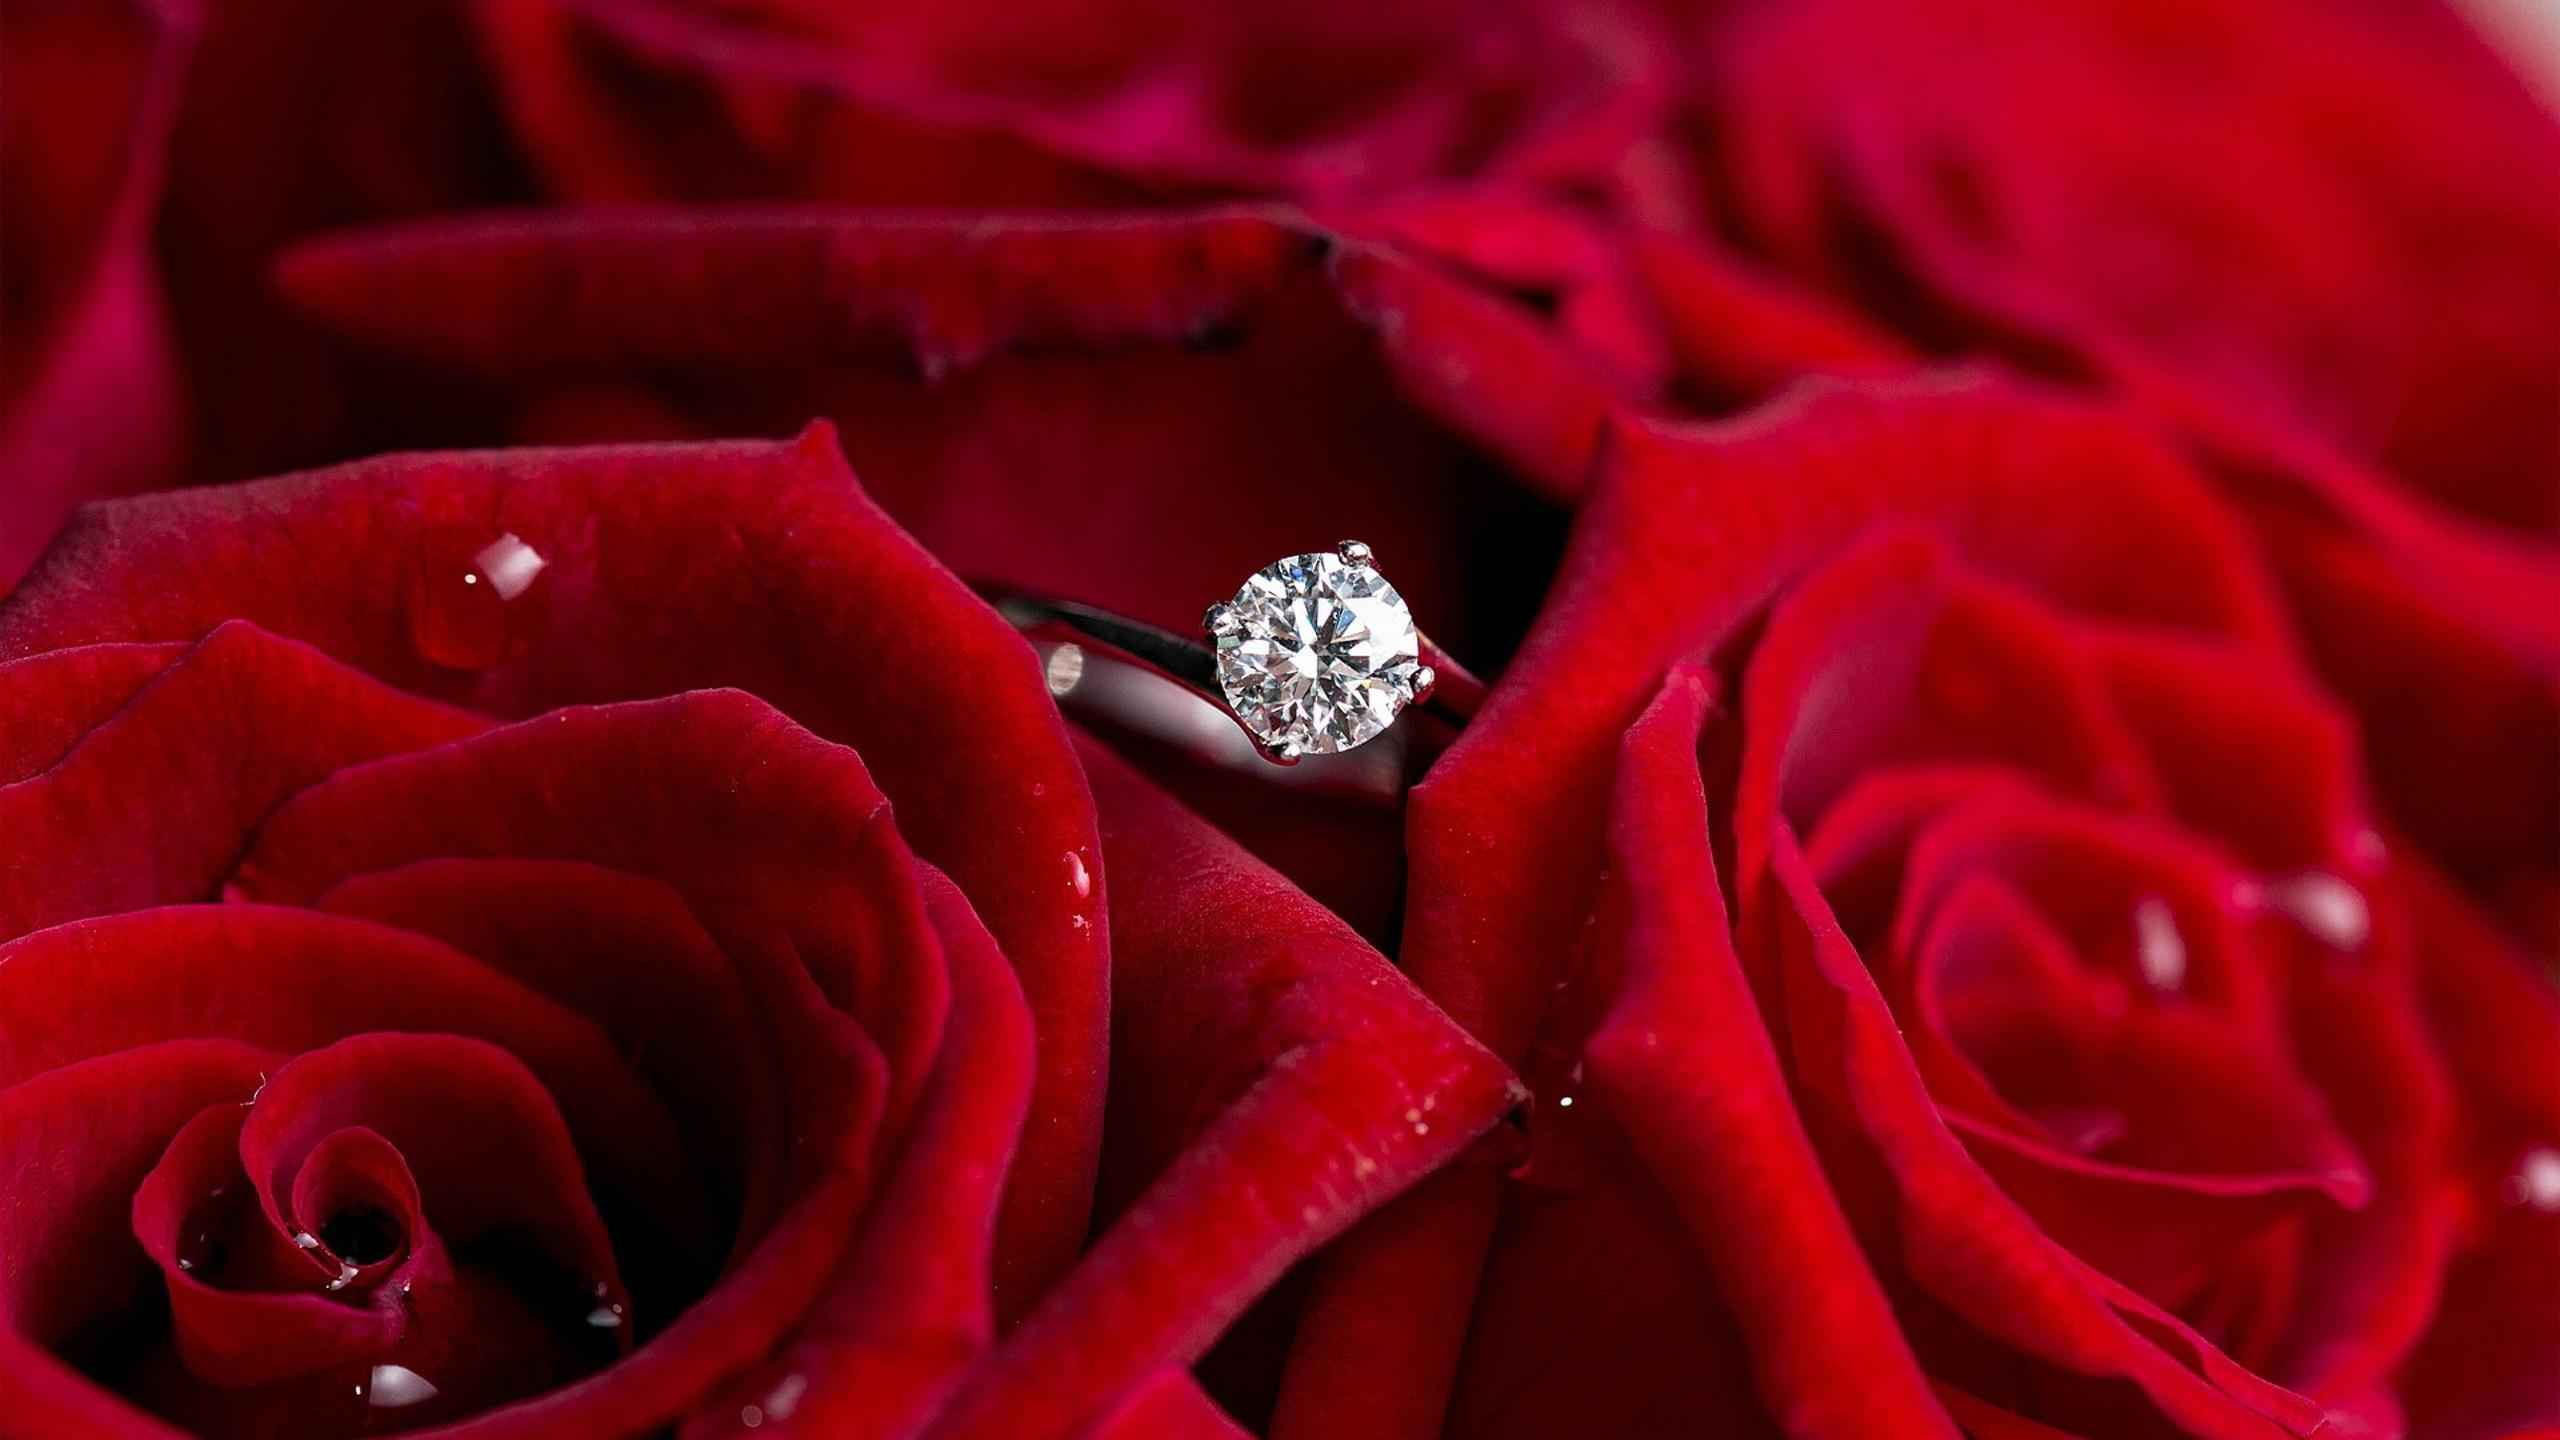 silver ring for marriage and beautiful red roses wallpaper download